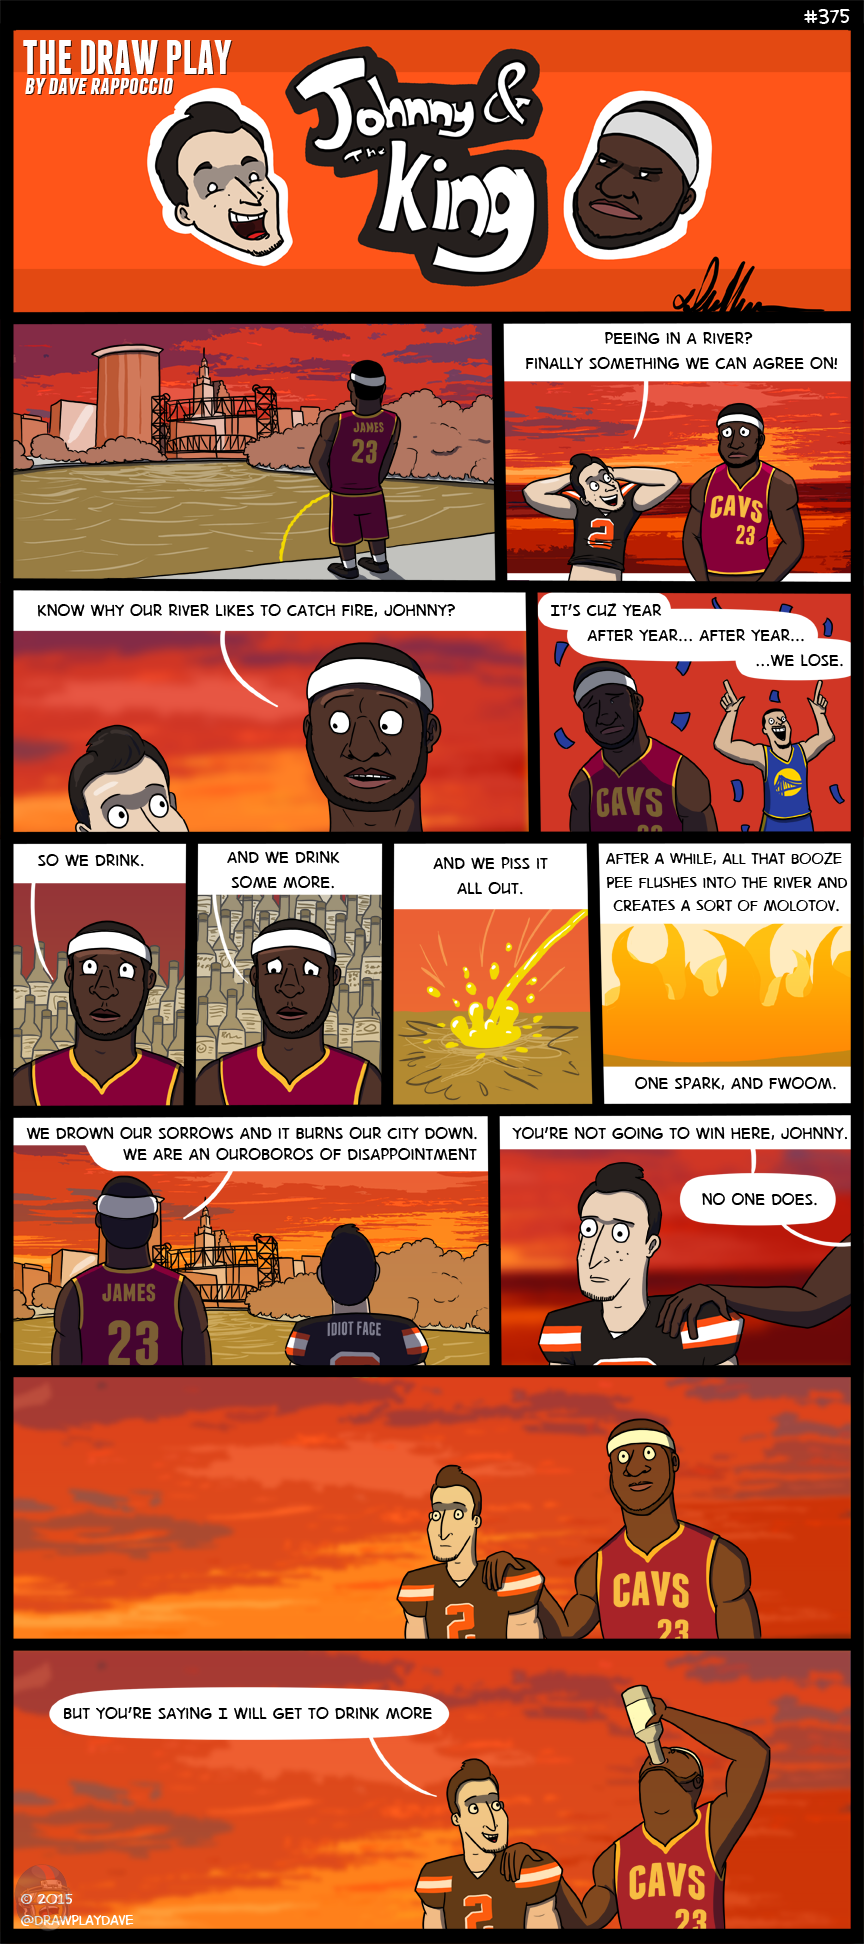 Can I get extra credit for finding a way to use Oroboros in a comic about athletes peeing in a river